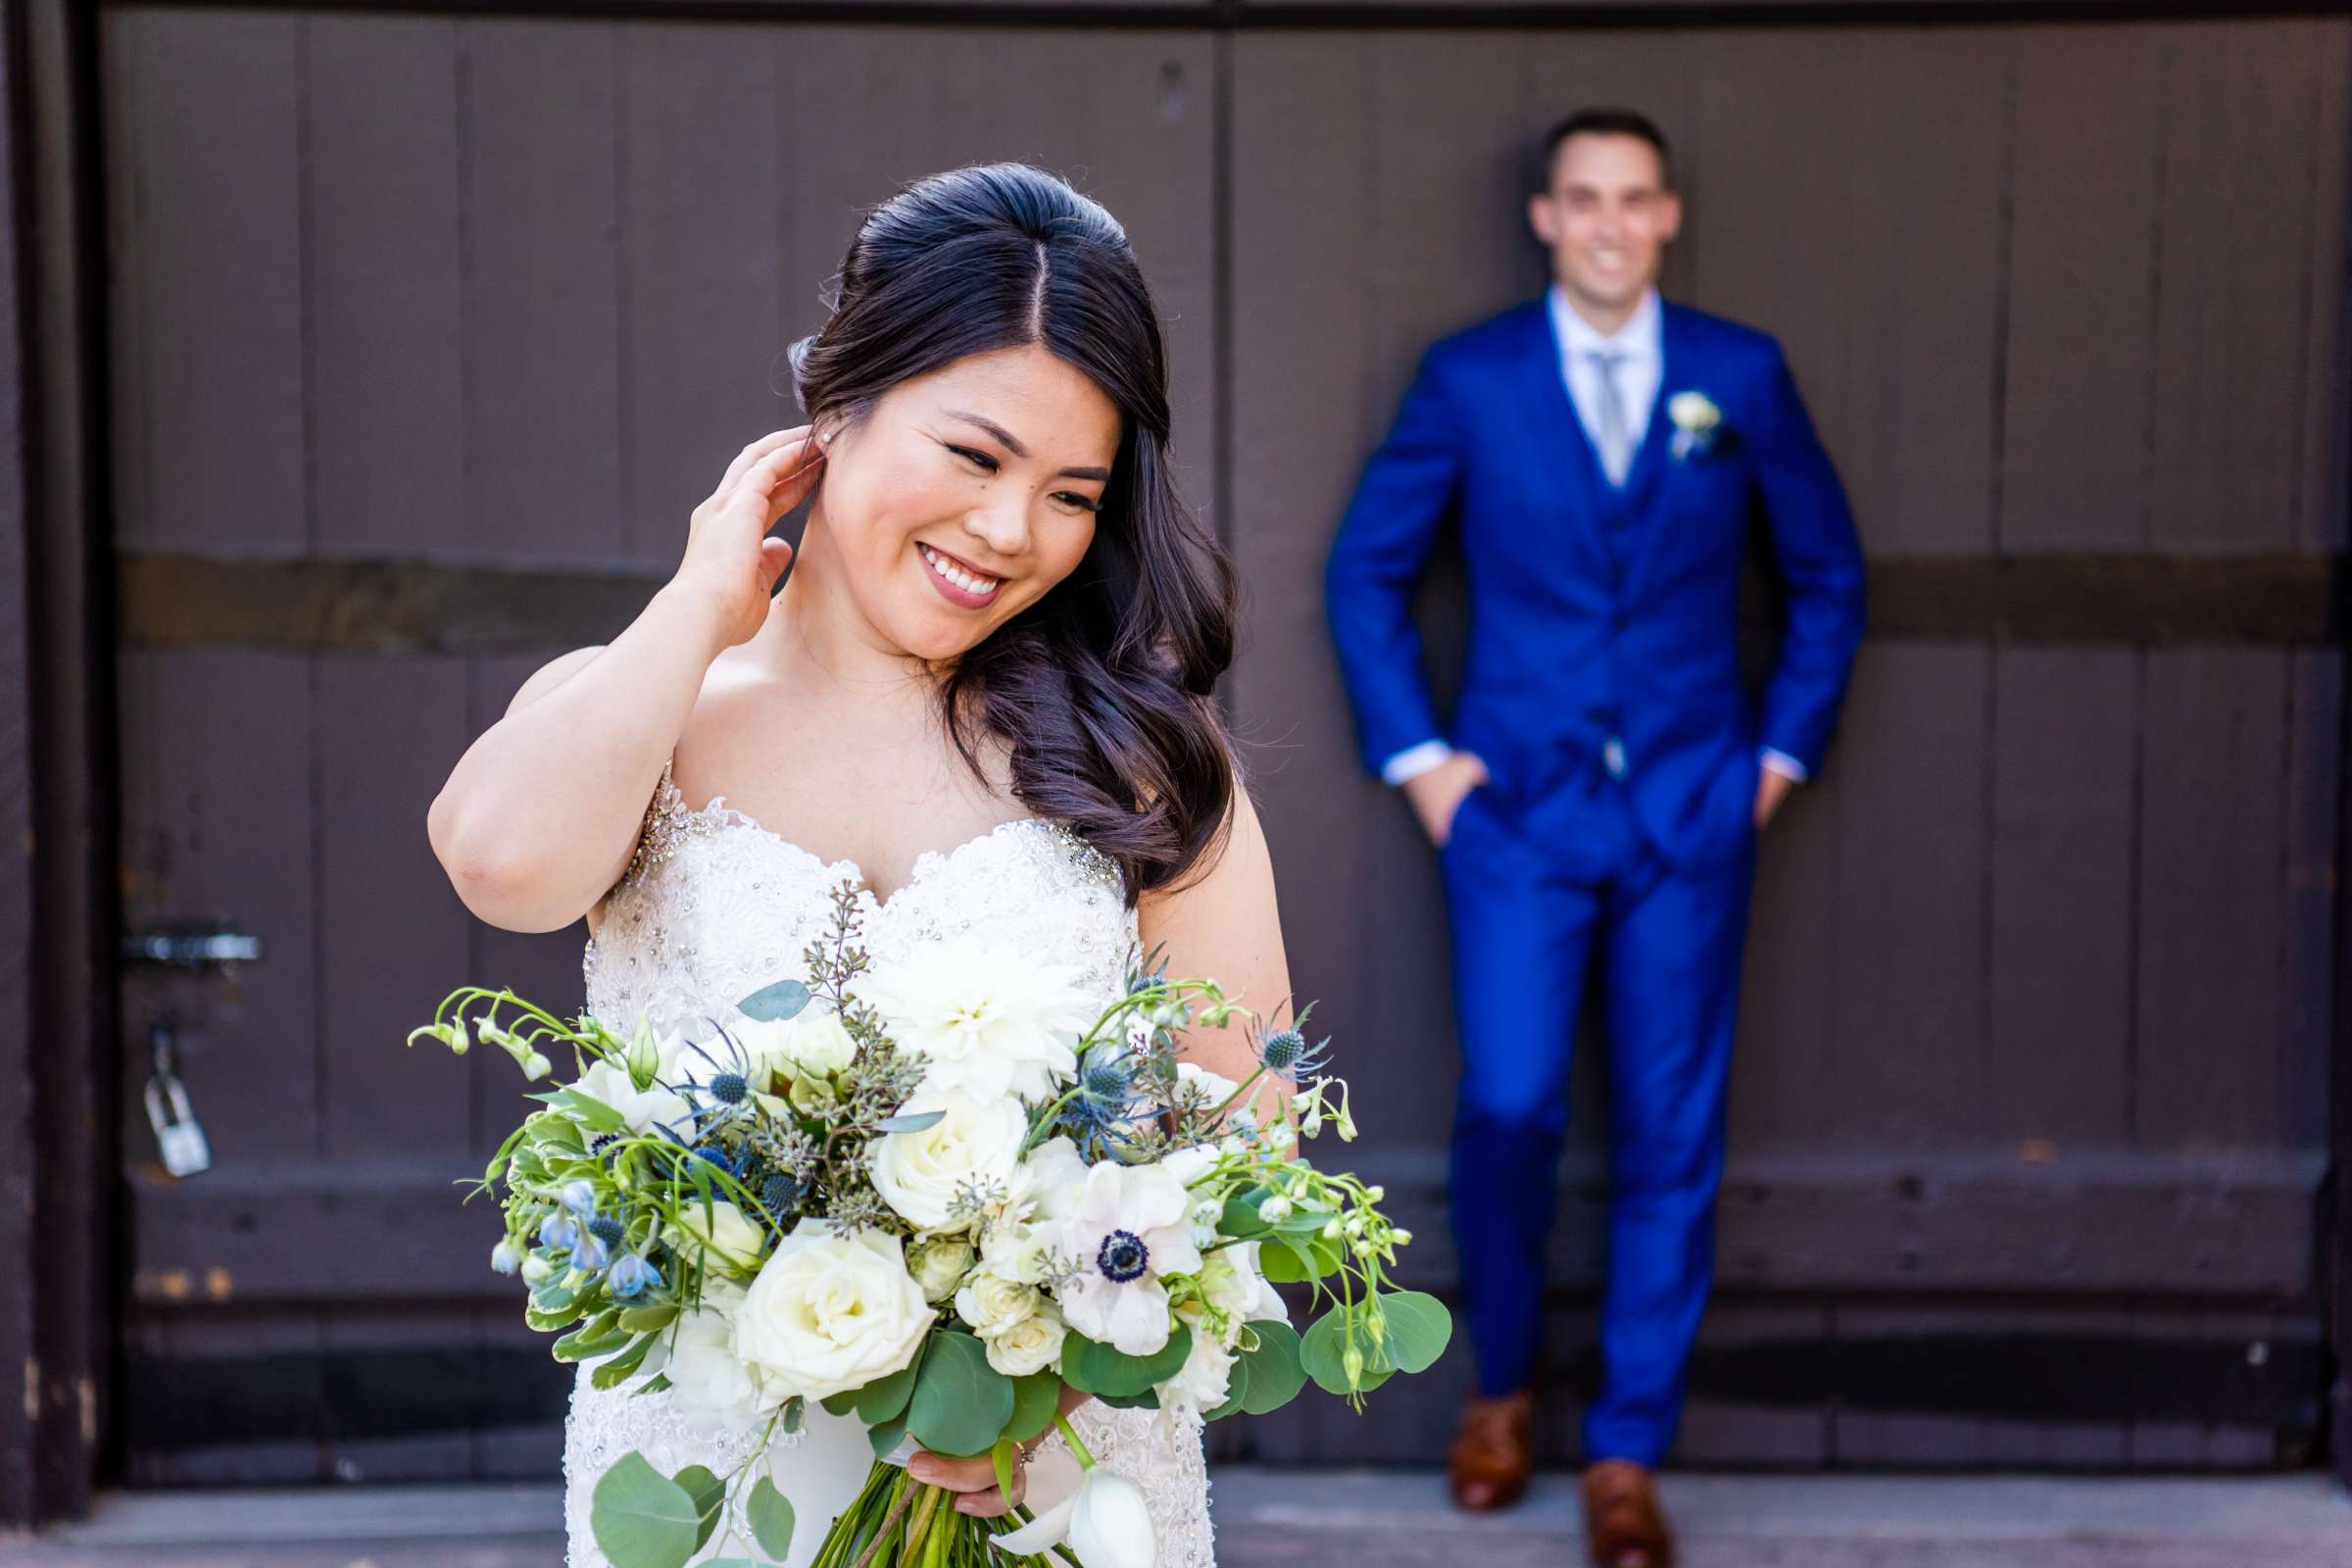 Mt Woodson Castle Wedding coordinated by I Do Weddings, Aya and Jared Wedding Photo #486975 by True Photography